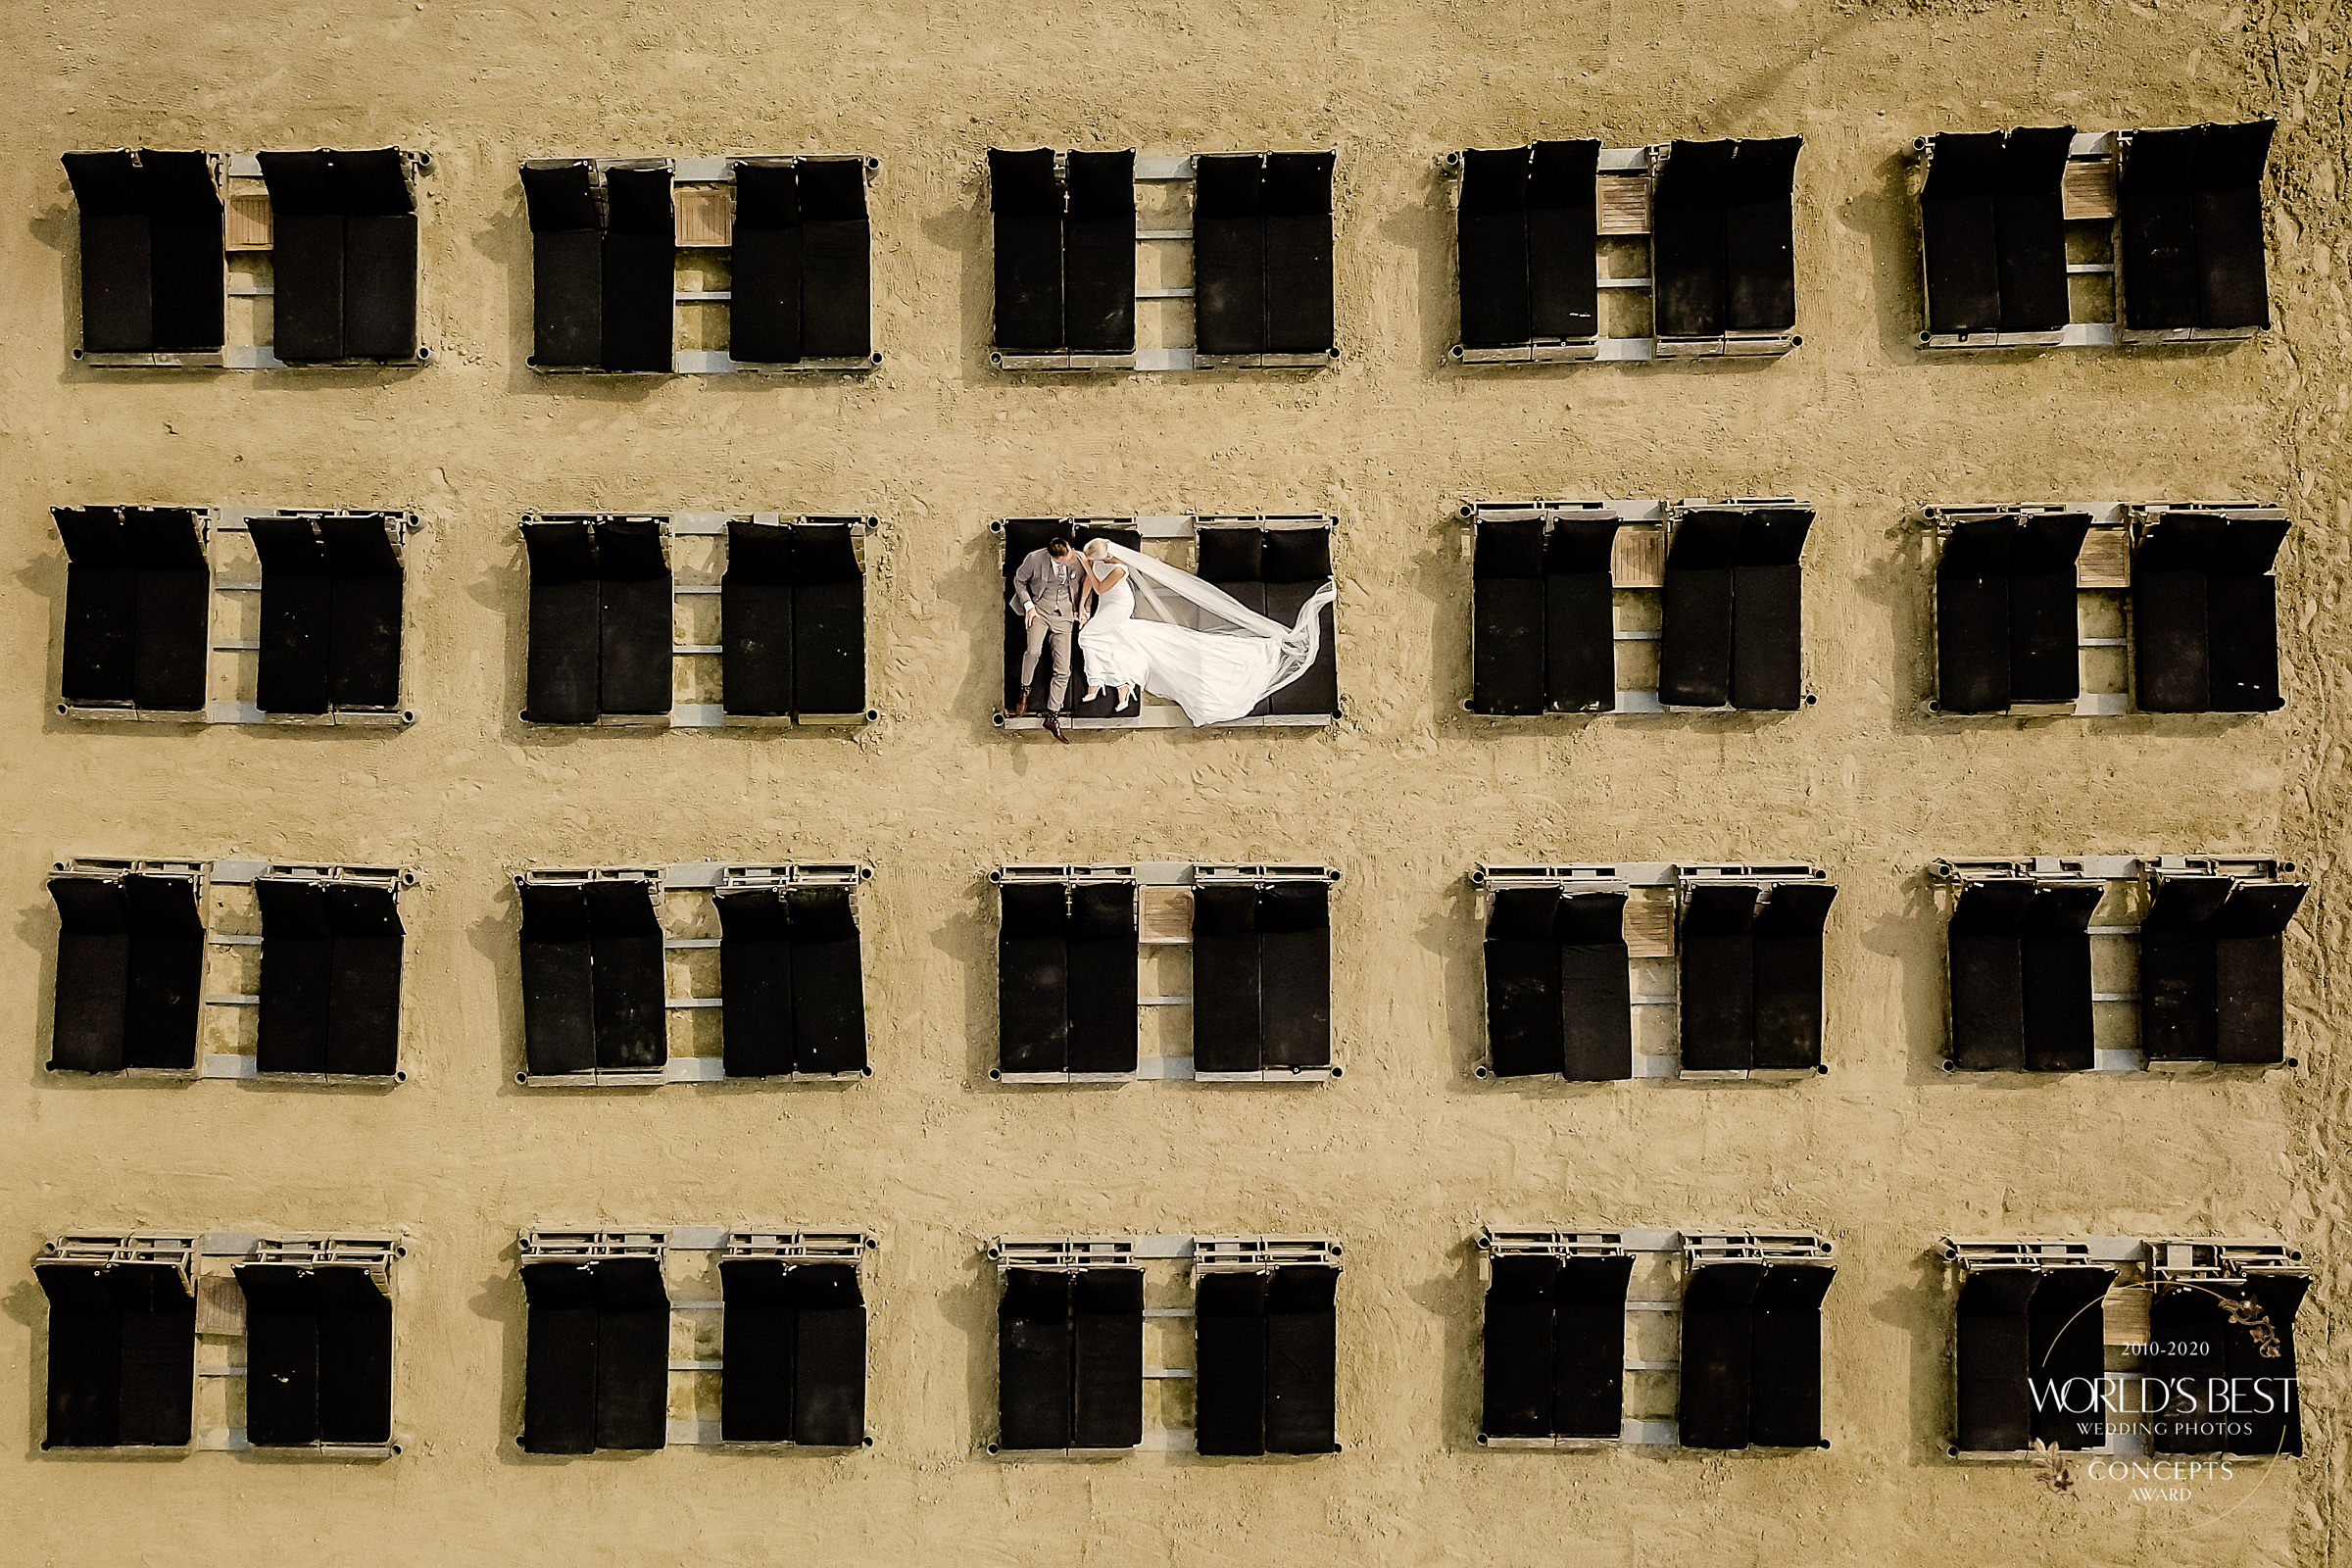 Trick of the eye drone photo by Eppel Photography - Netherlands